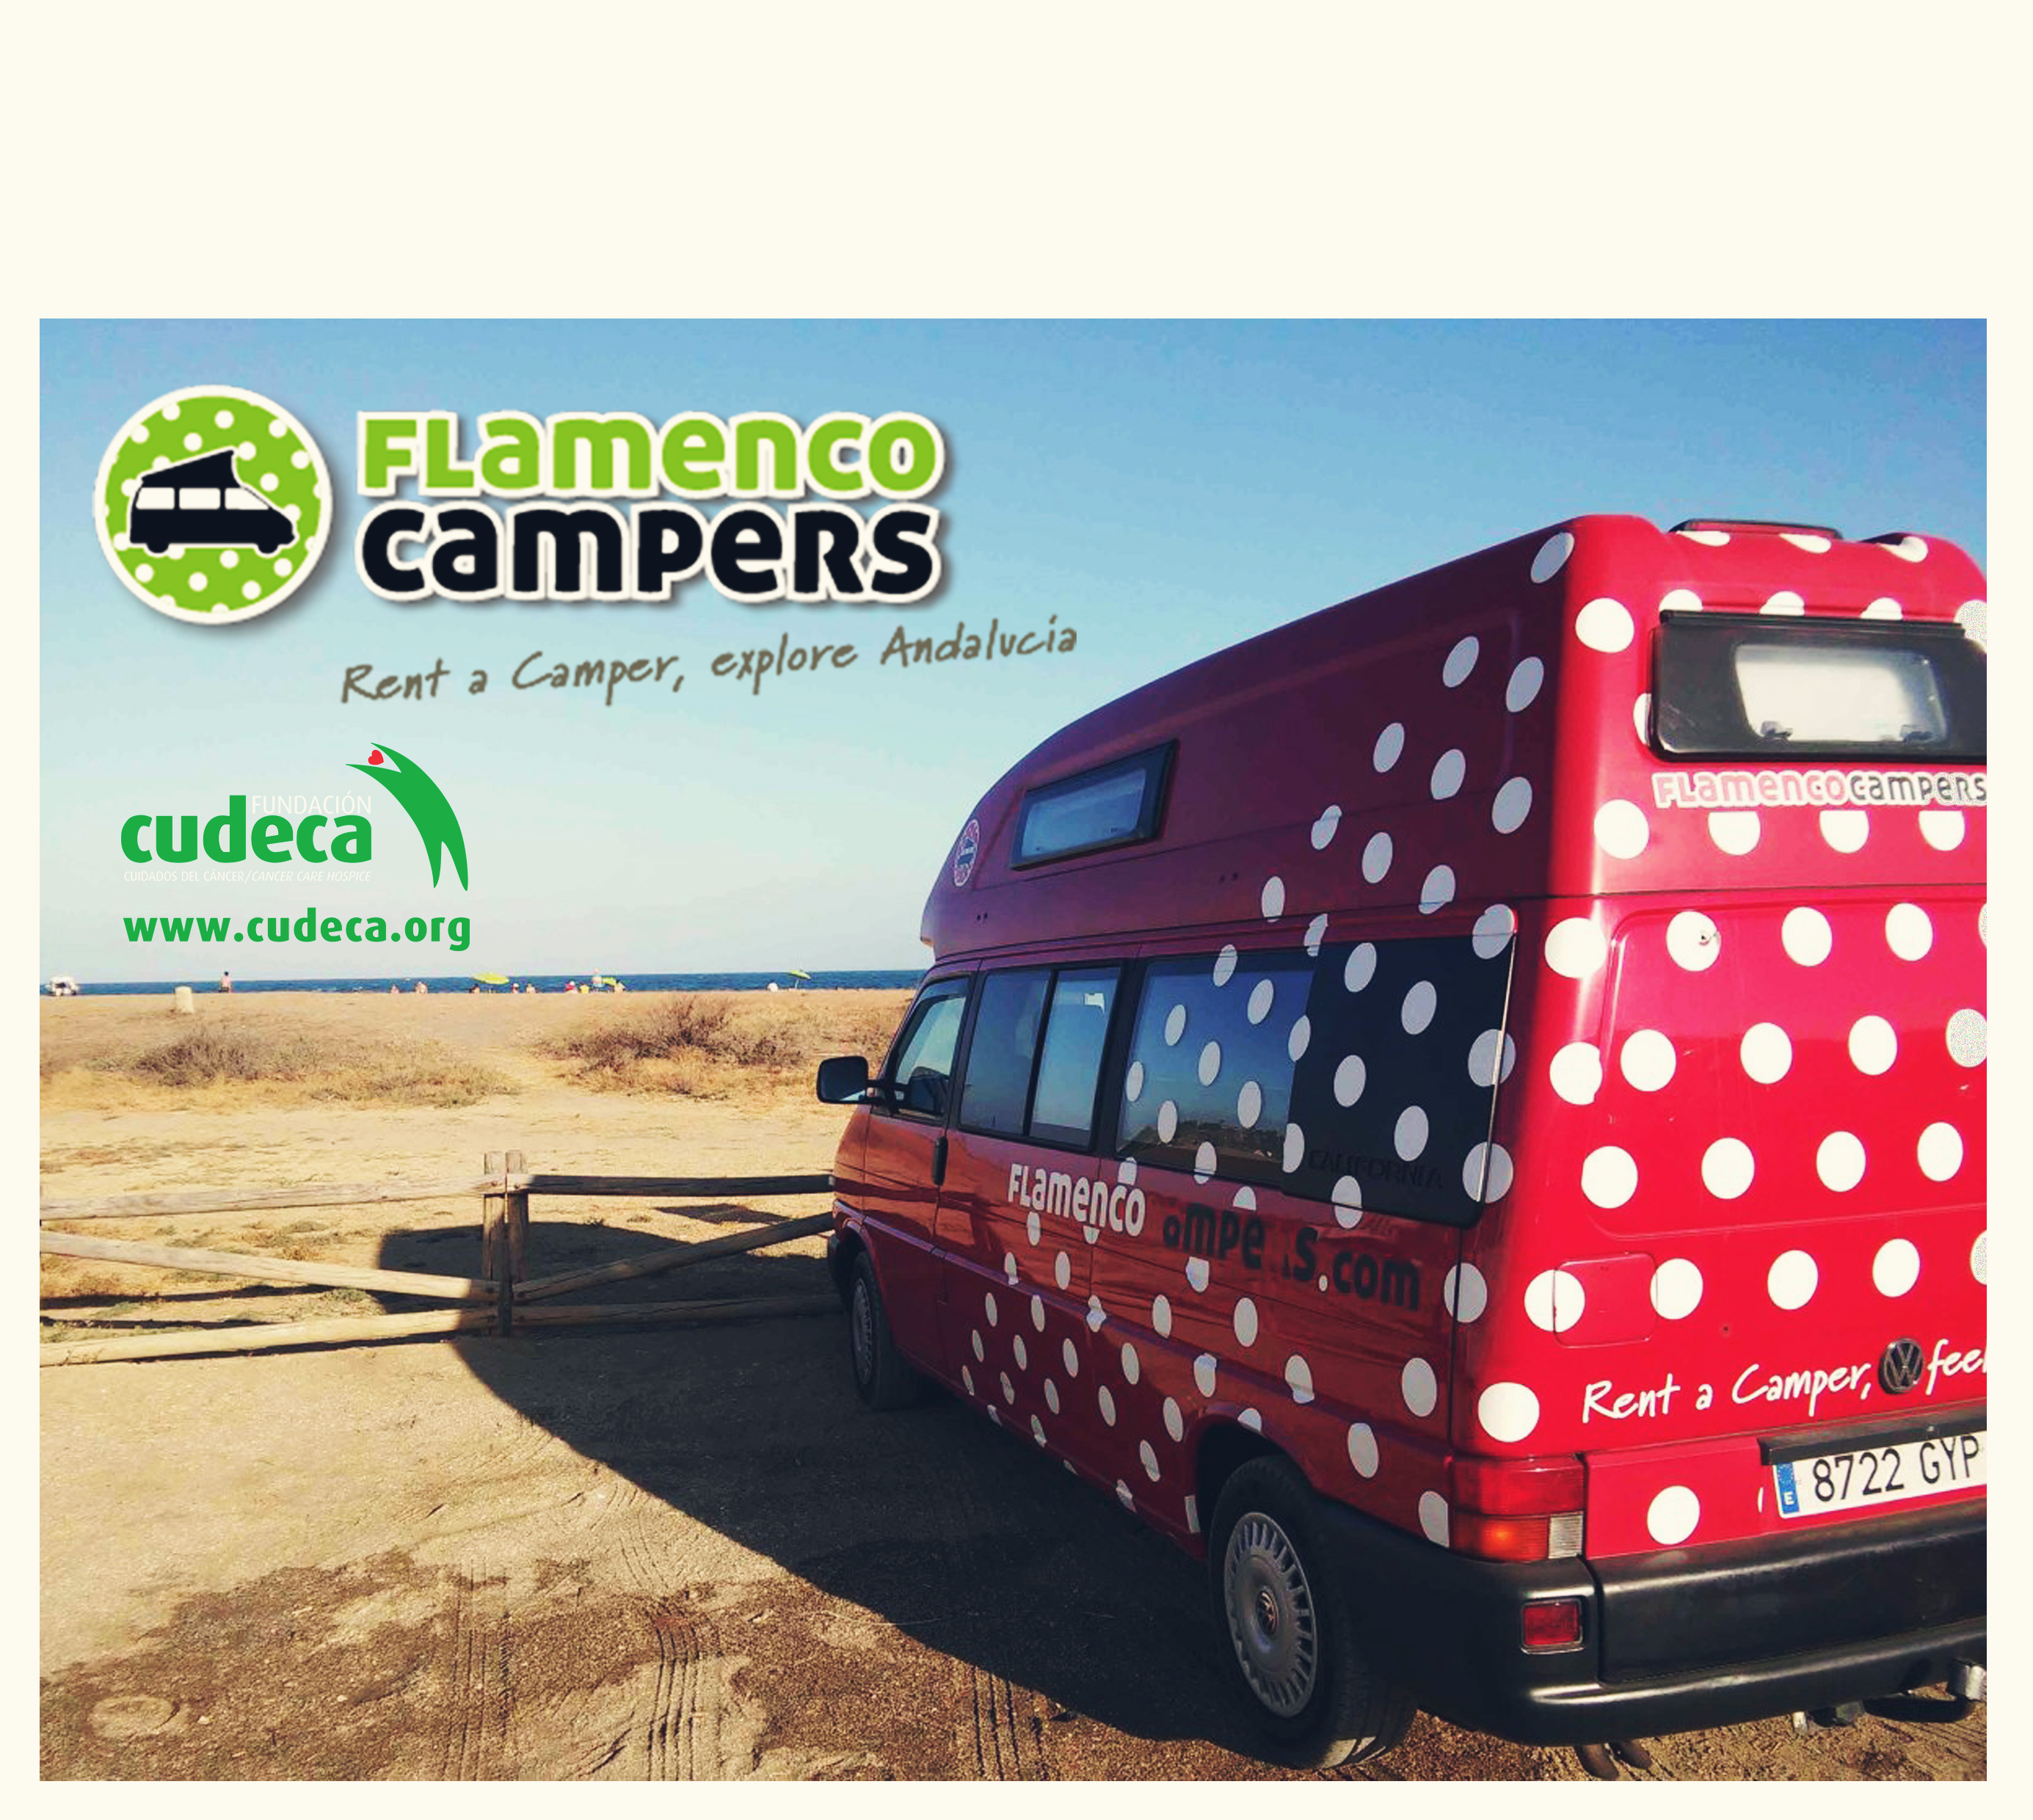 Flamenco Campers with Cudeca one more time